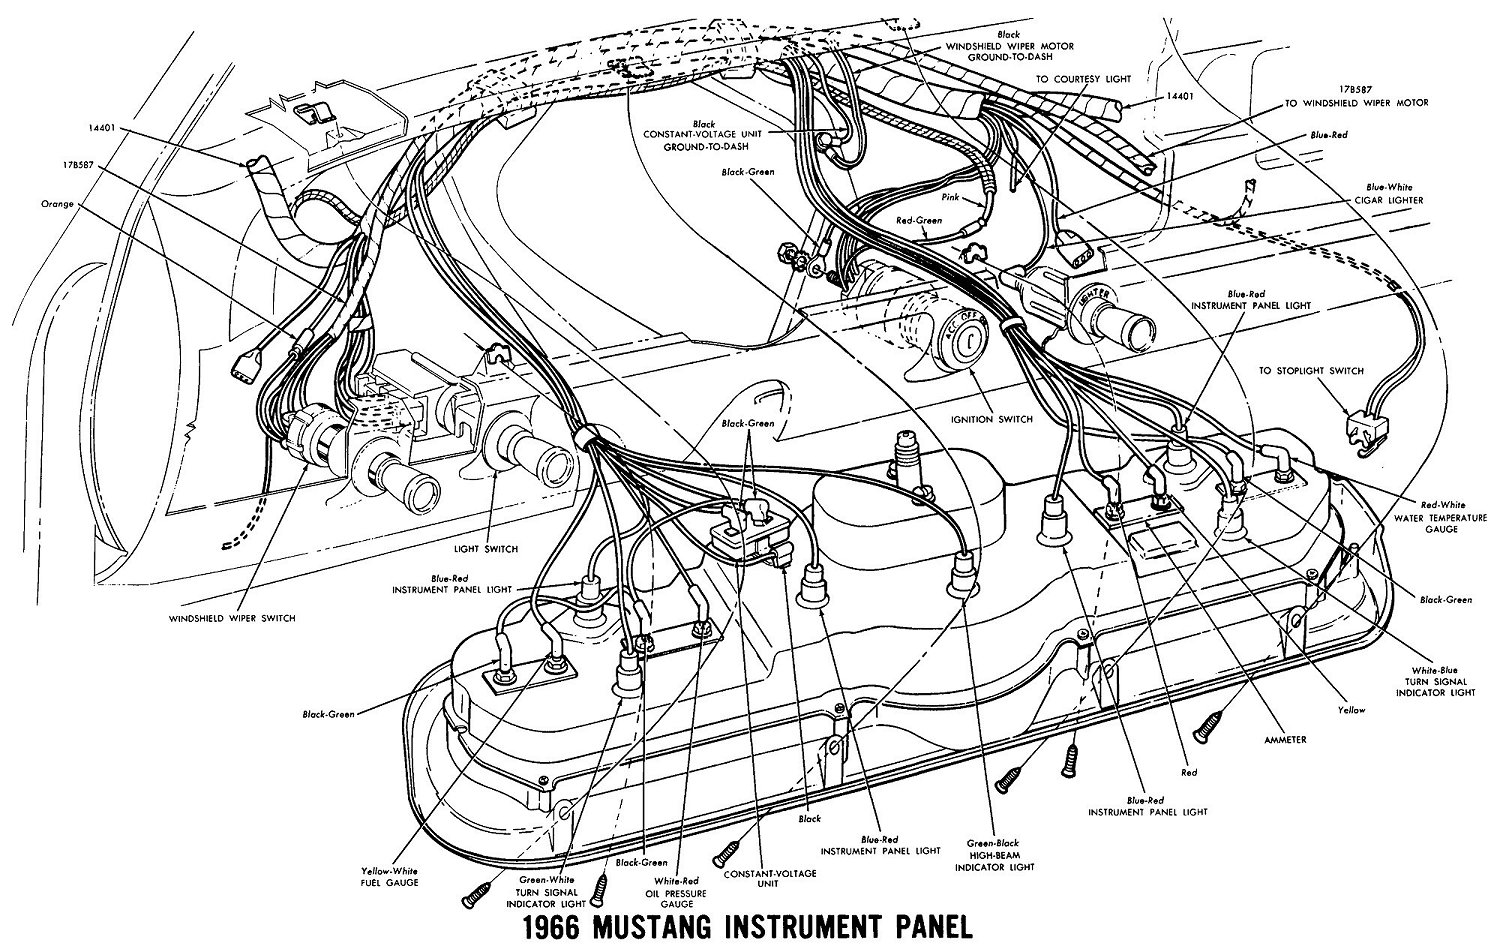 66InstrumentWiring lelu's 66 mustang 1966 mustang wiring diagrams 1966 mustang wiring diagrams at n-0.co